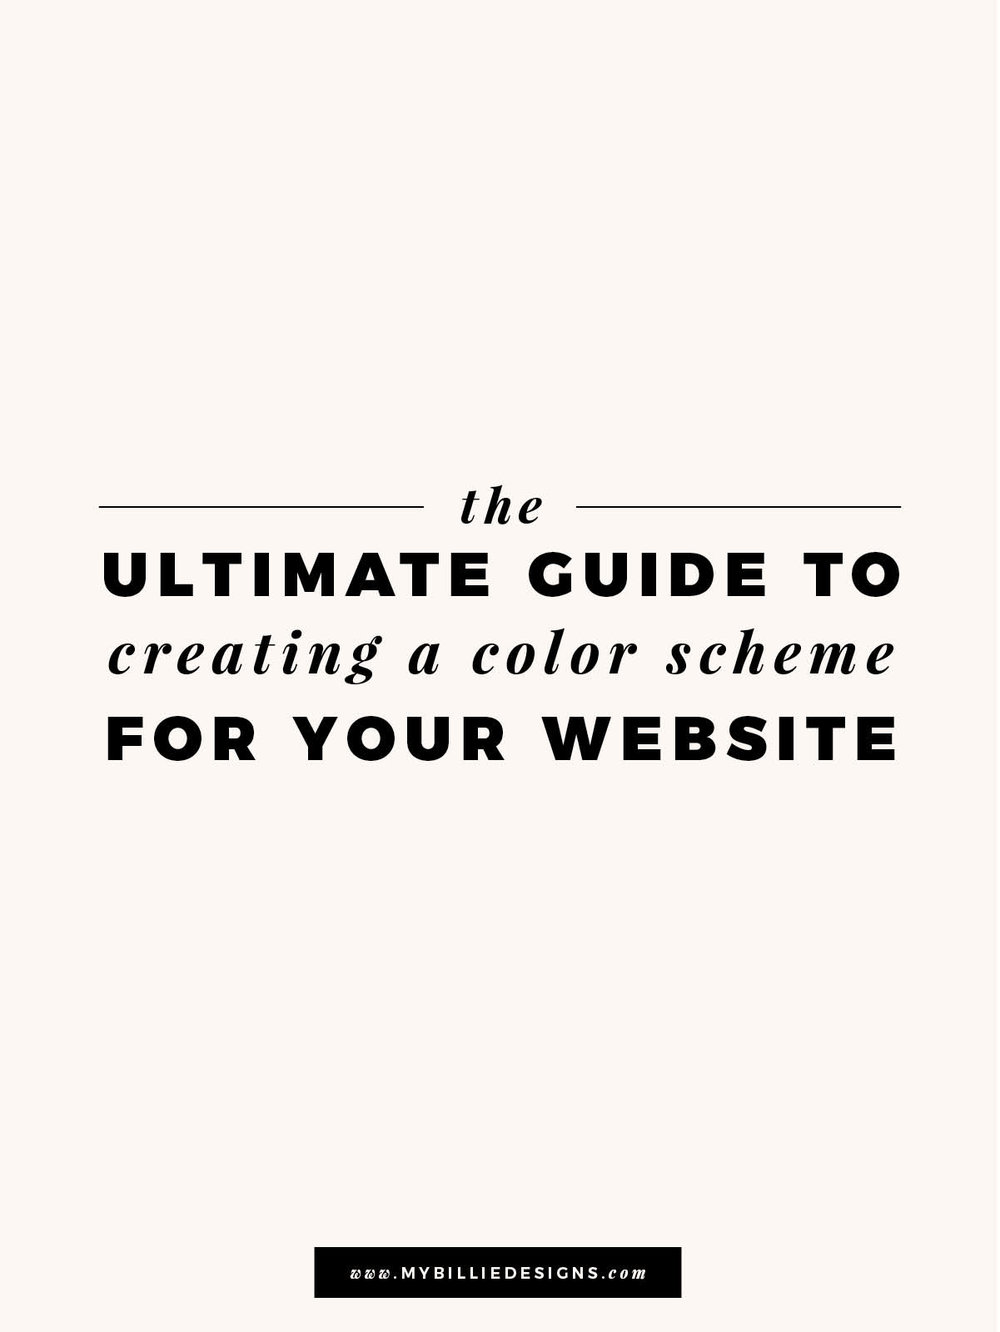 The ultimate guide for creating a color scheme for your website and business!